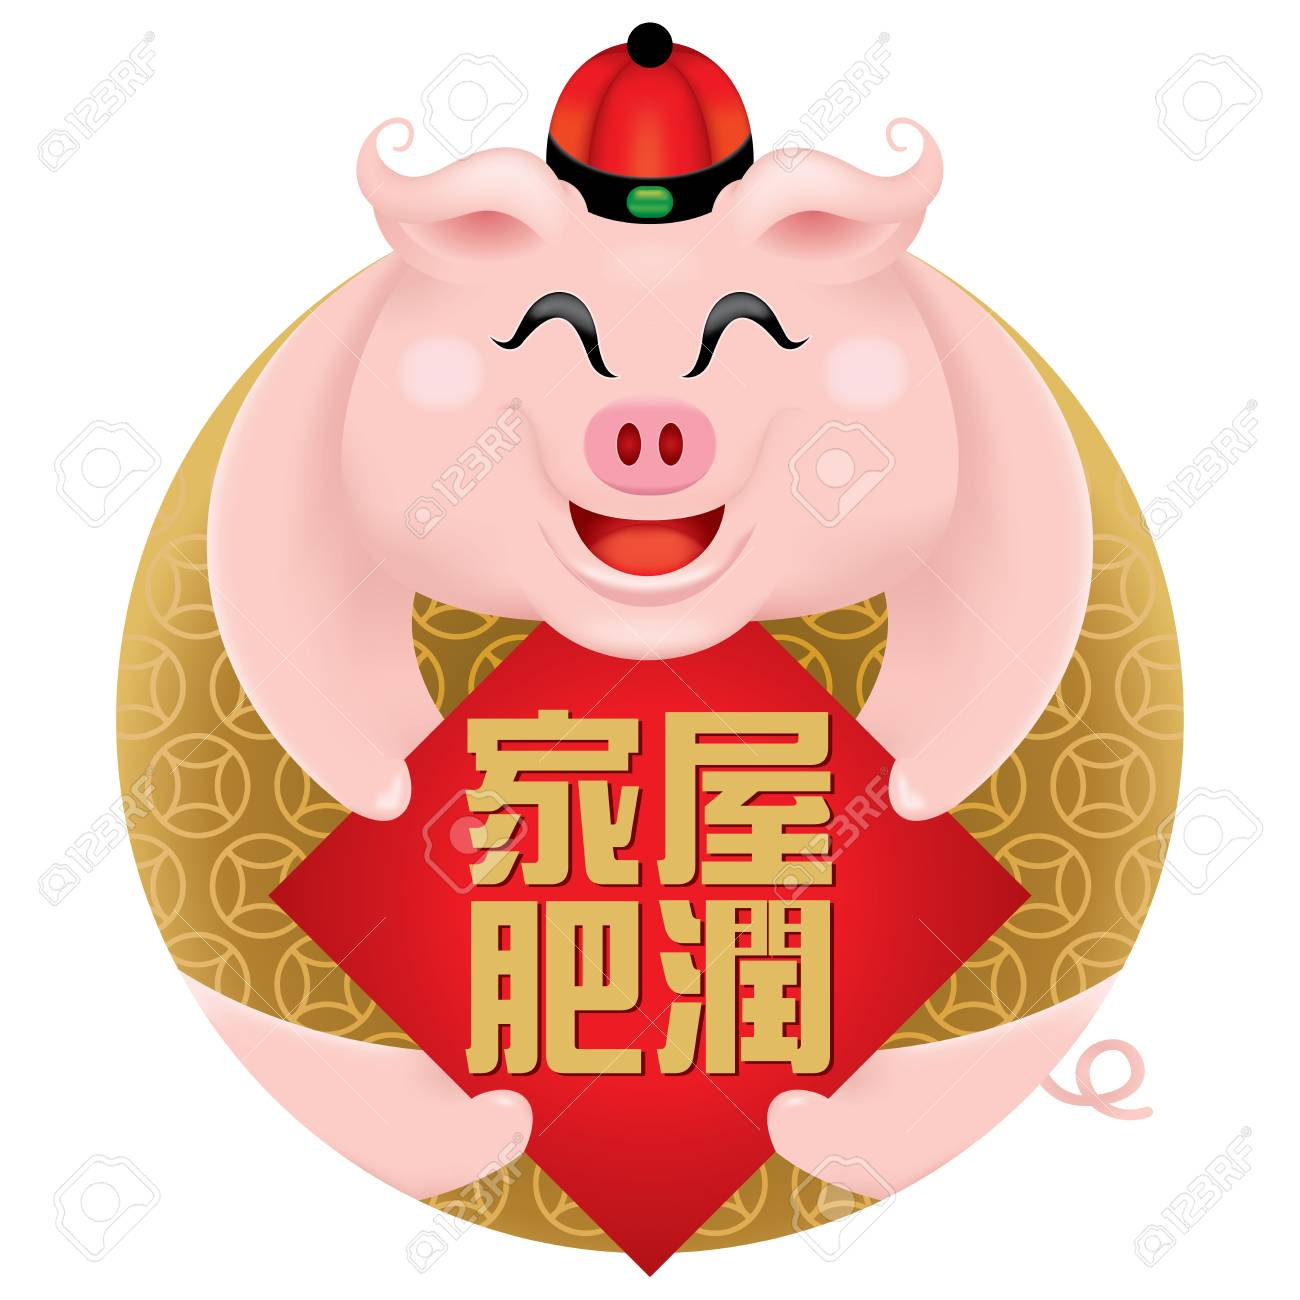 Cute little pig's image for Chinese New Year 2019, also the year